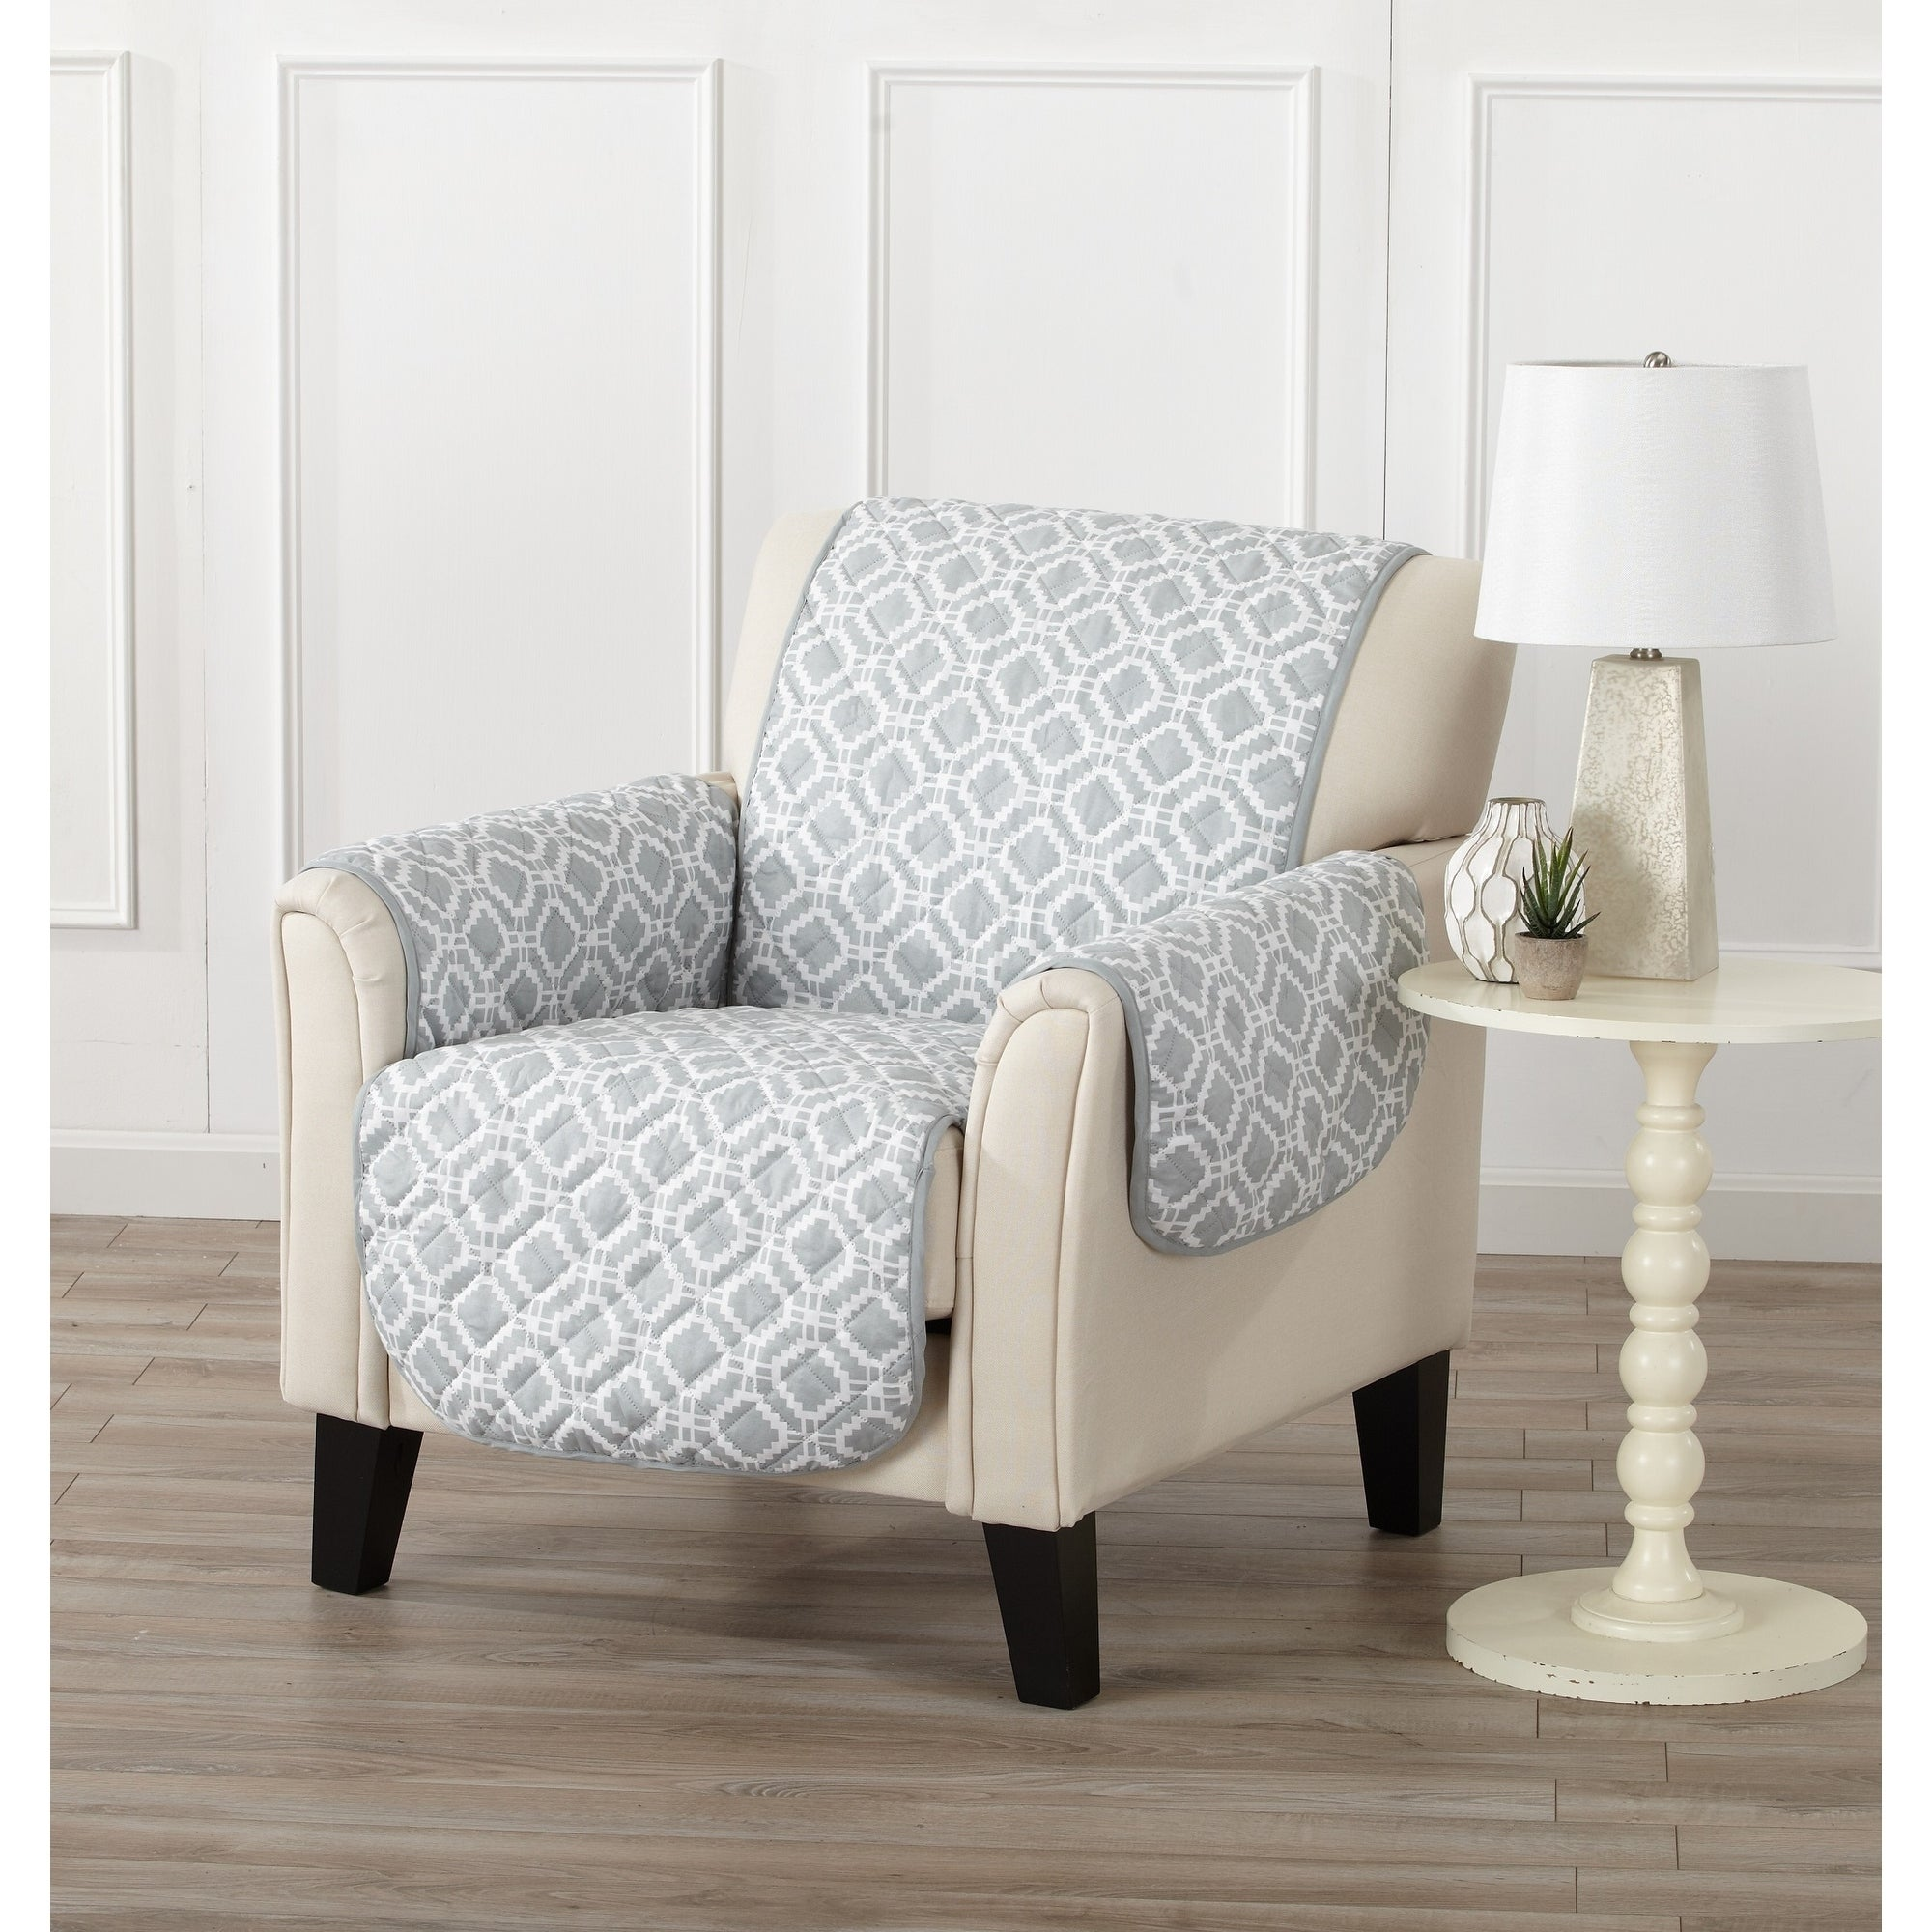 Home Fashion Designs Liliana Collection Deluxe Reversible Chair ...